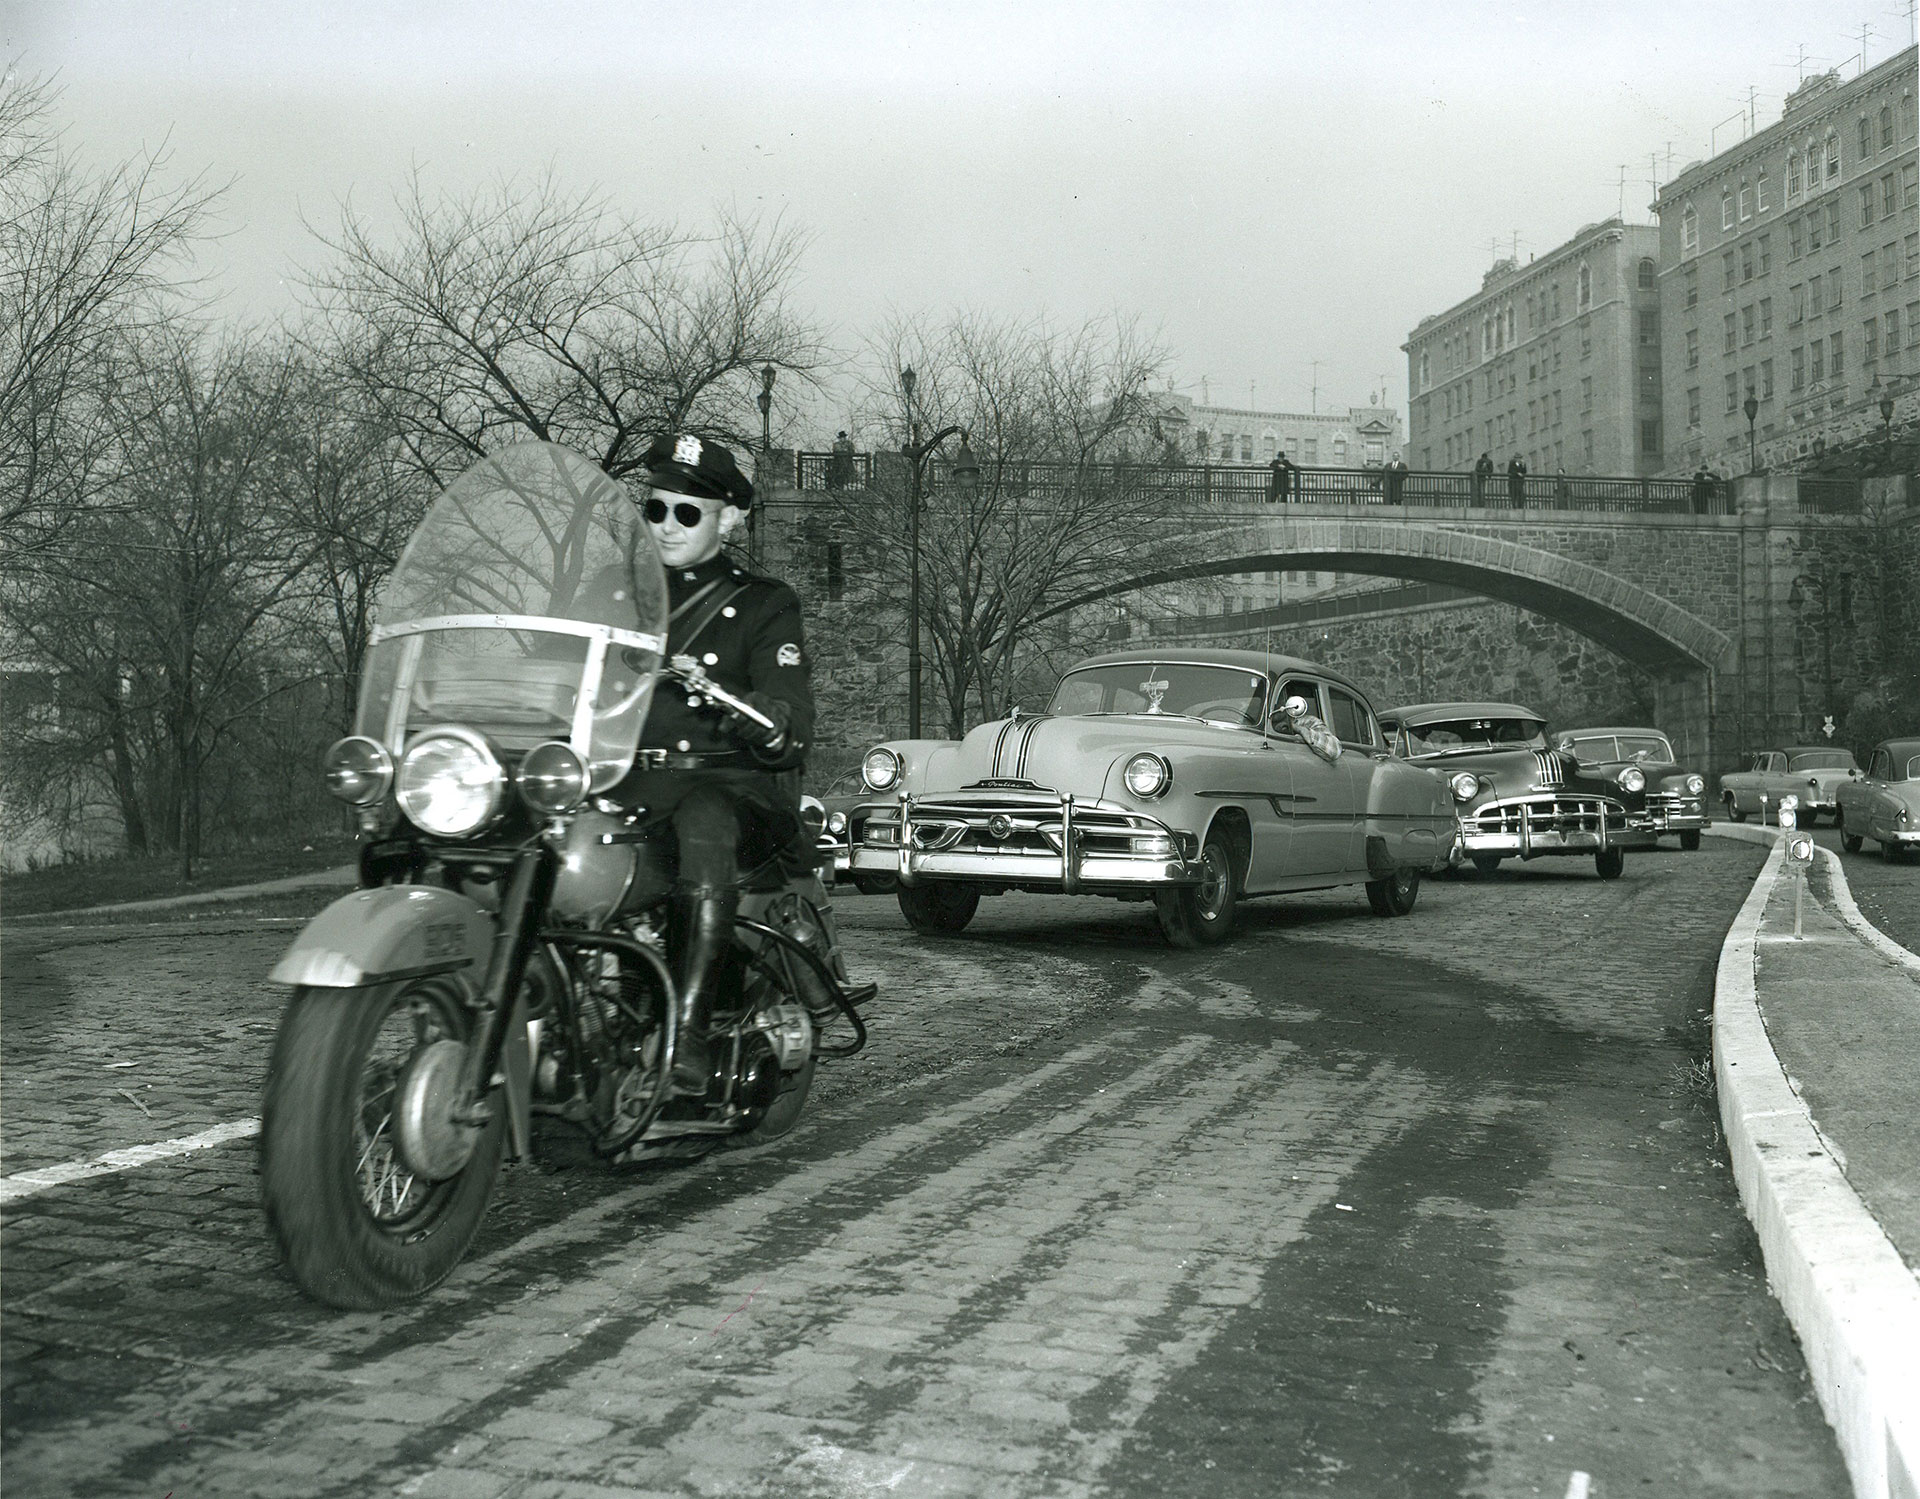 PAPD Motorcycle Officer from the 1940s